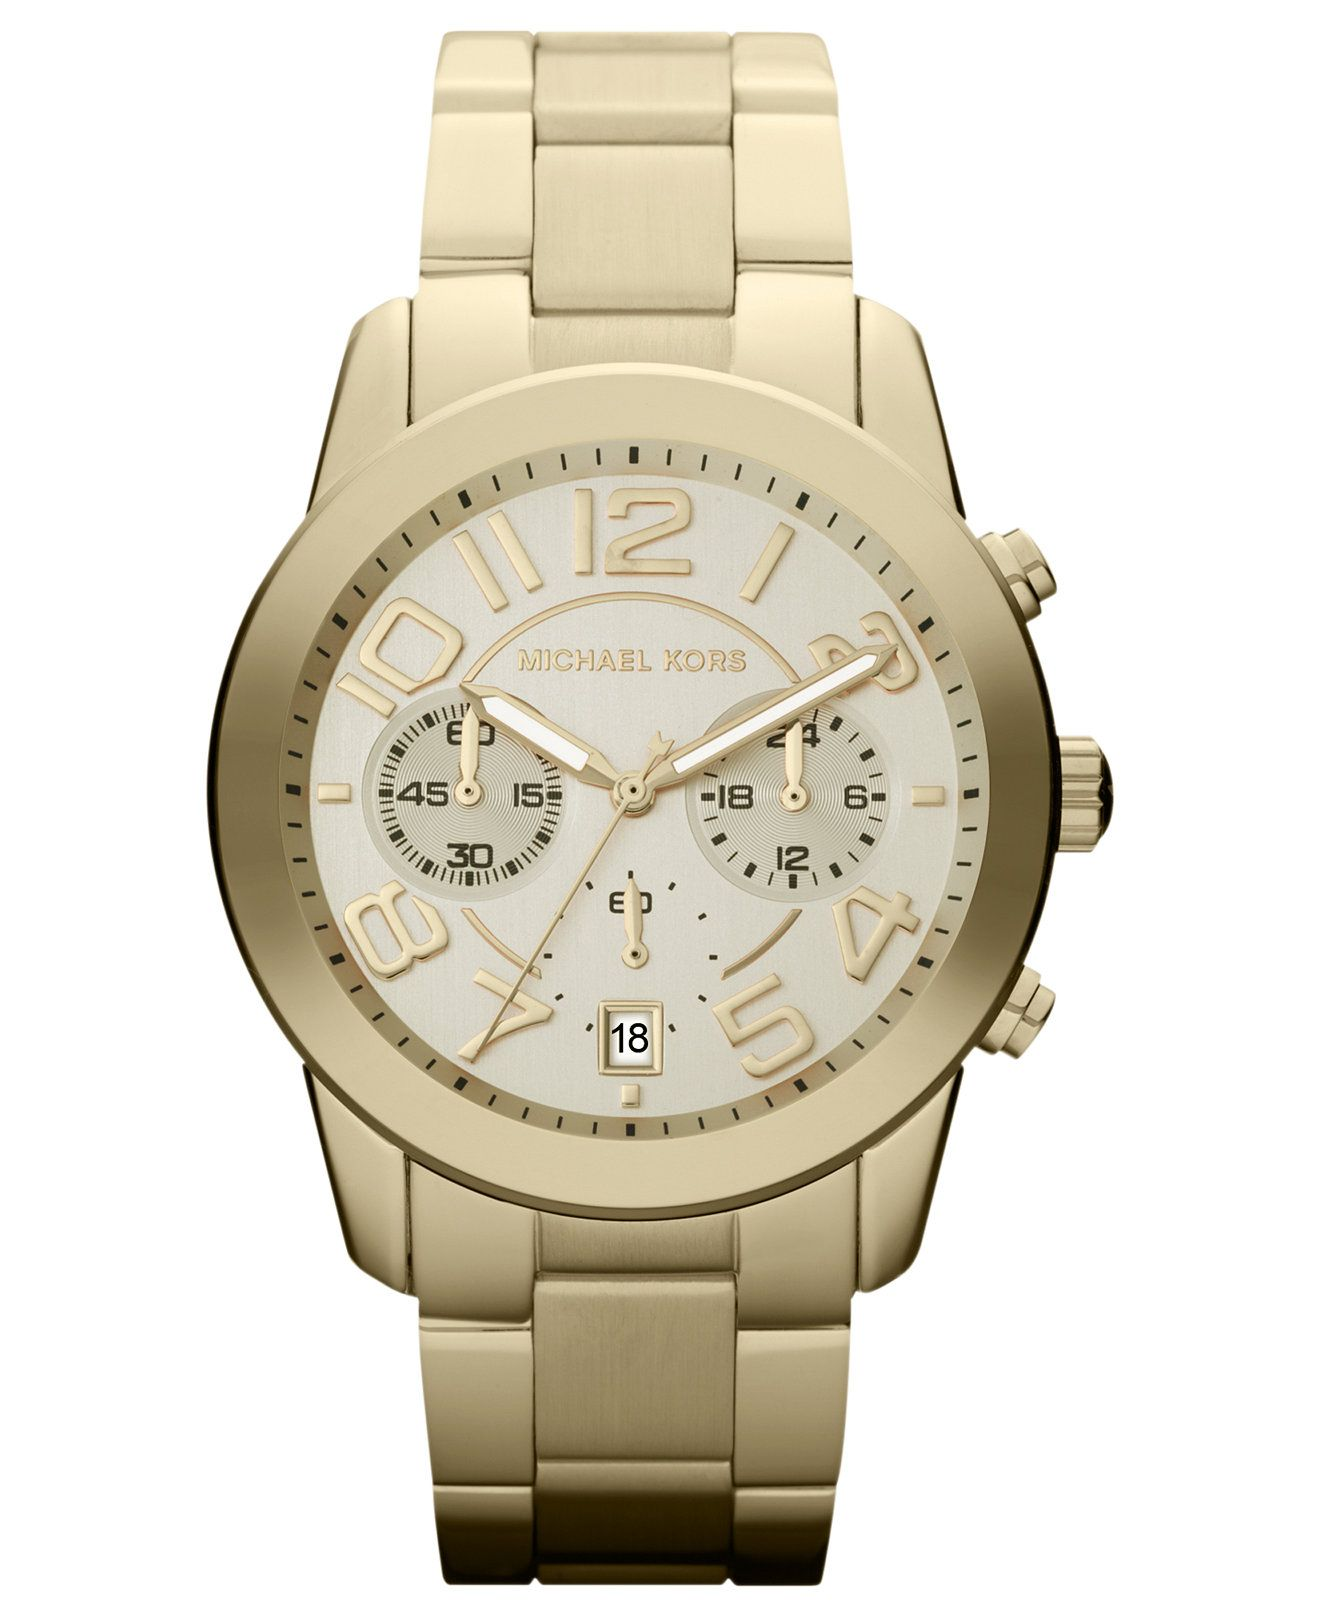 Michael Kors Women's Chronograph Mercer Gold-Tone Stainless Steel Bracelet Watch 42mm MK5726 - Watches - Jewelry & Watches - Macy's